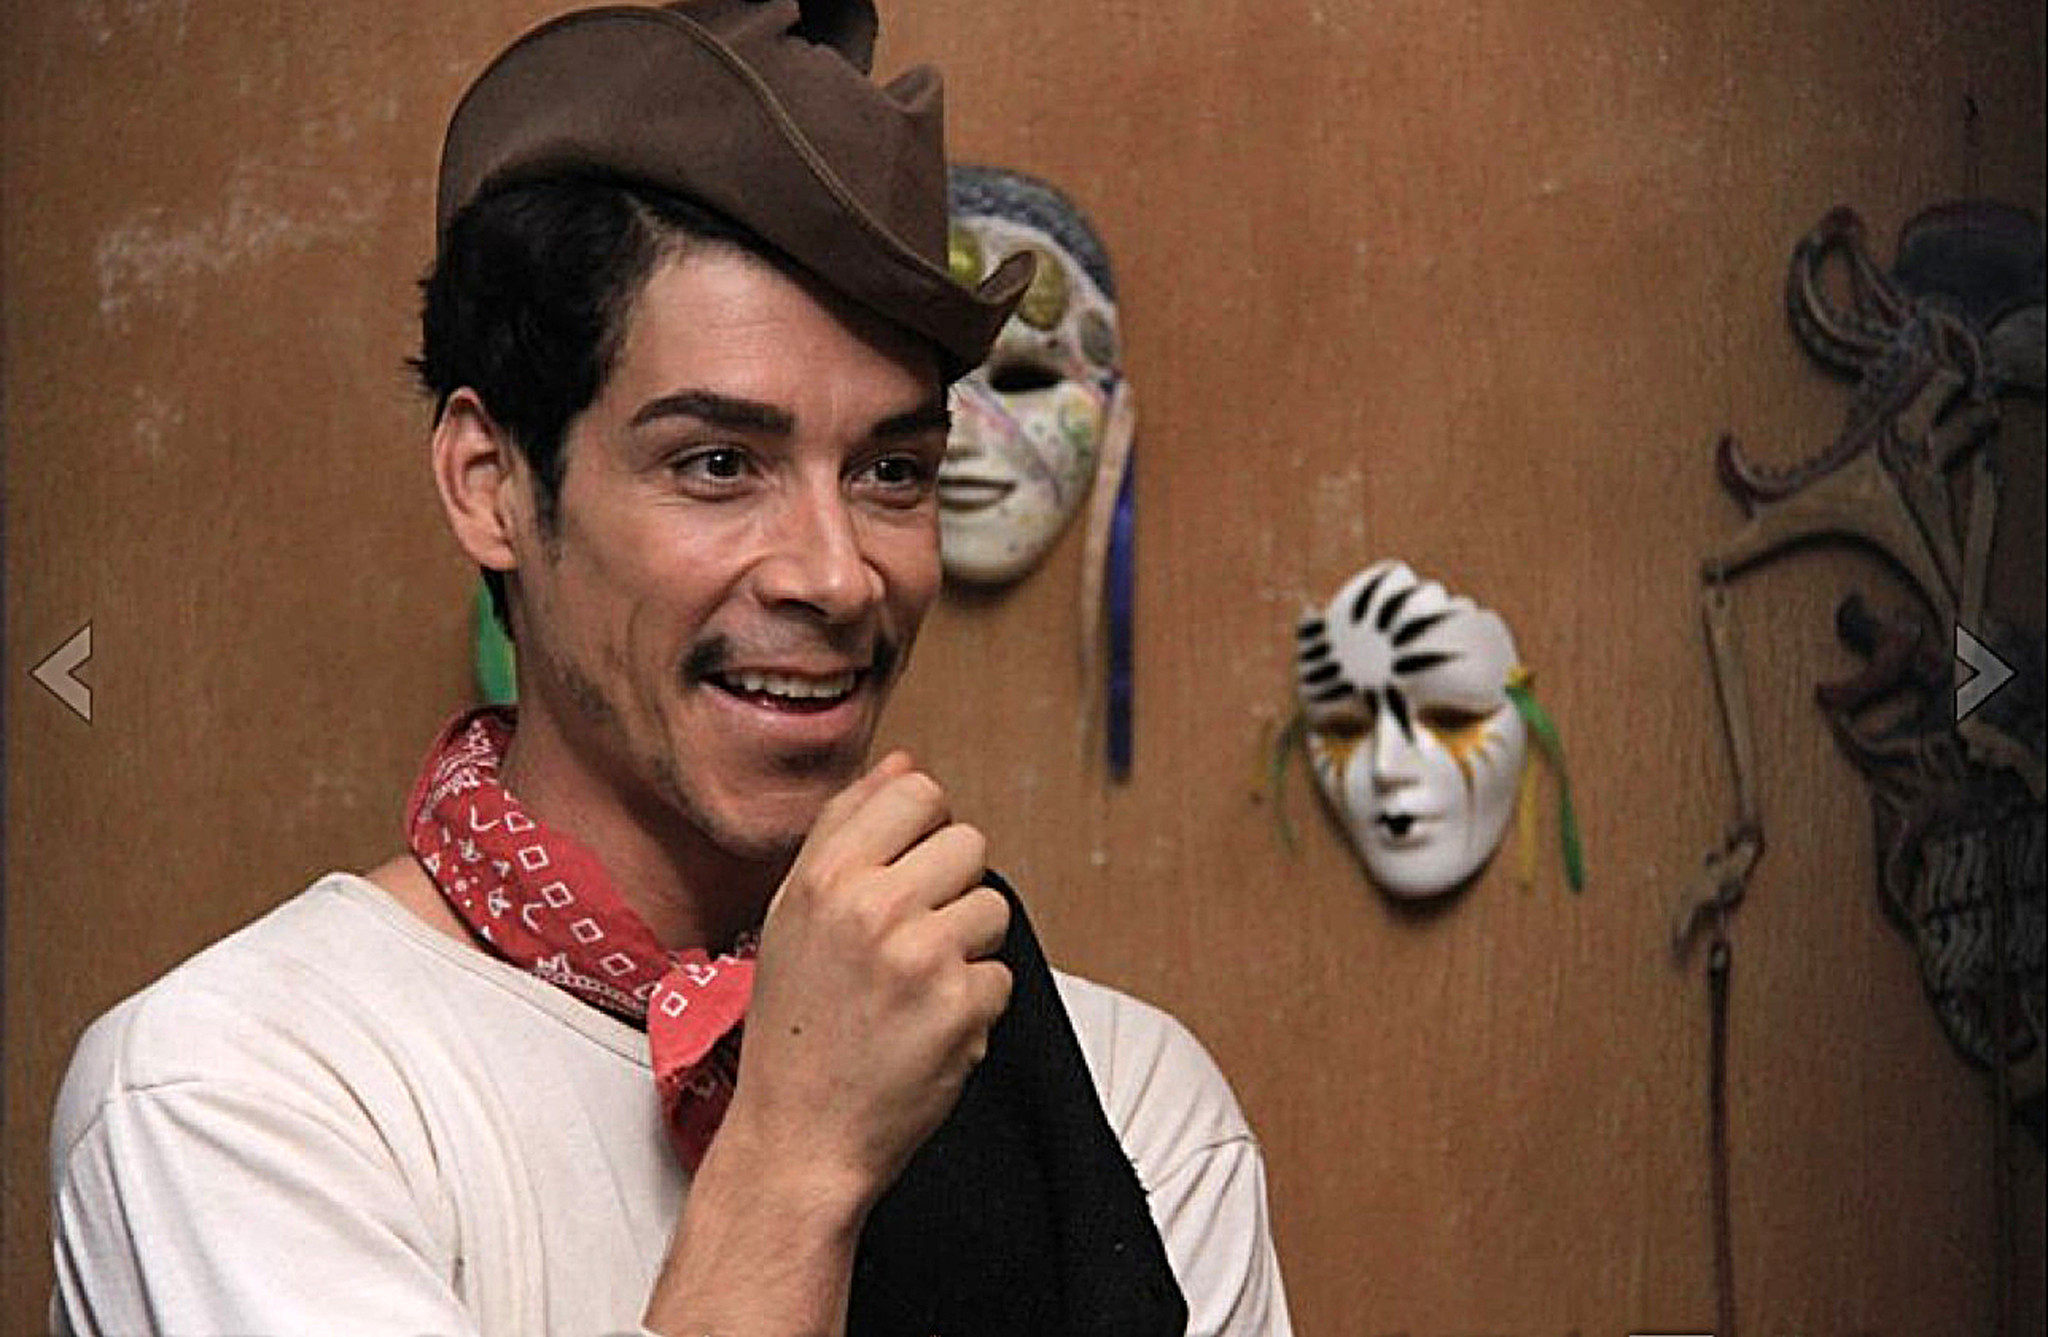 Review: 'Cantinflas' is buoyed by Oscar Jaenada, hampered by Hollywood - LA Times